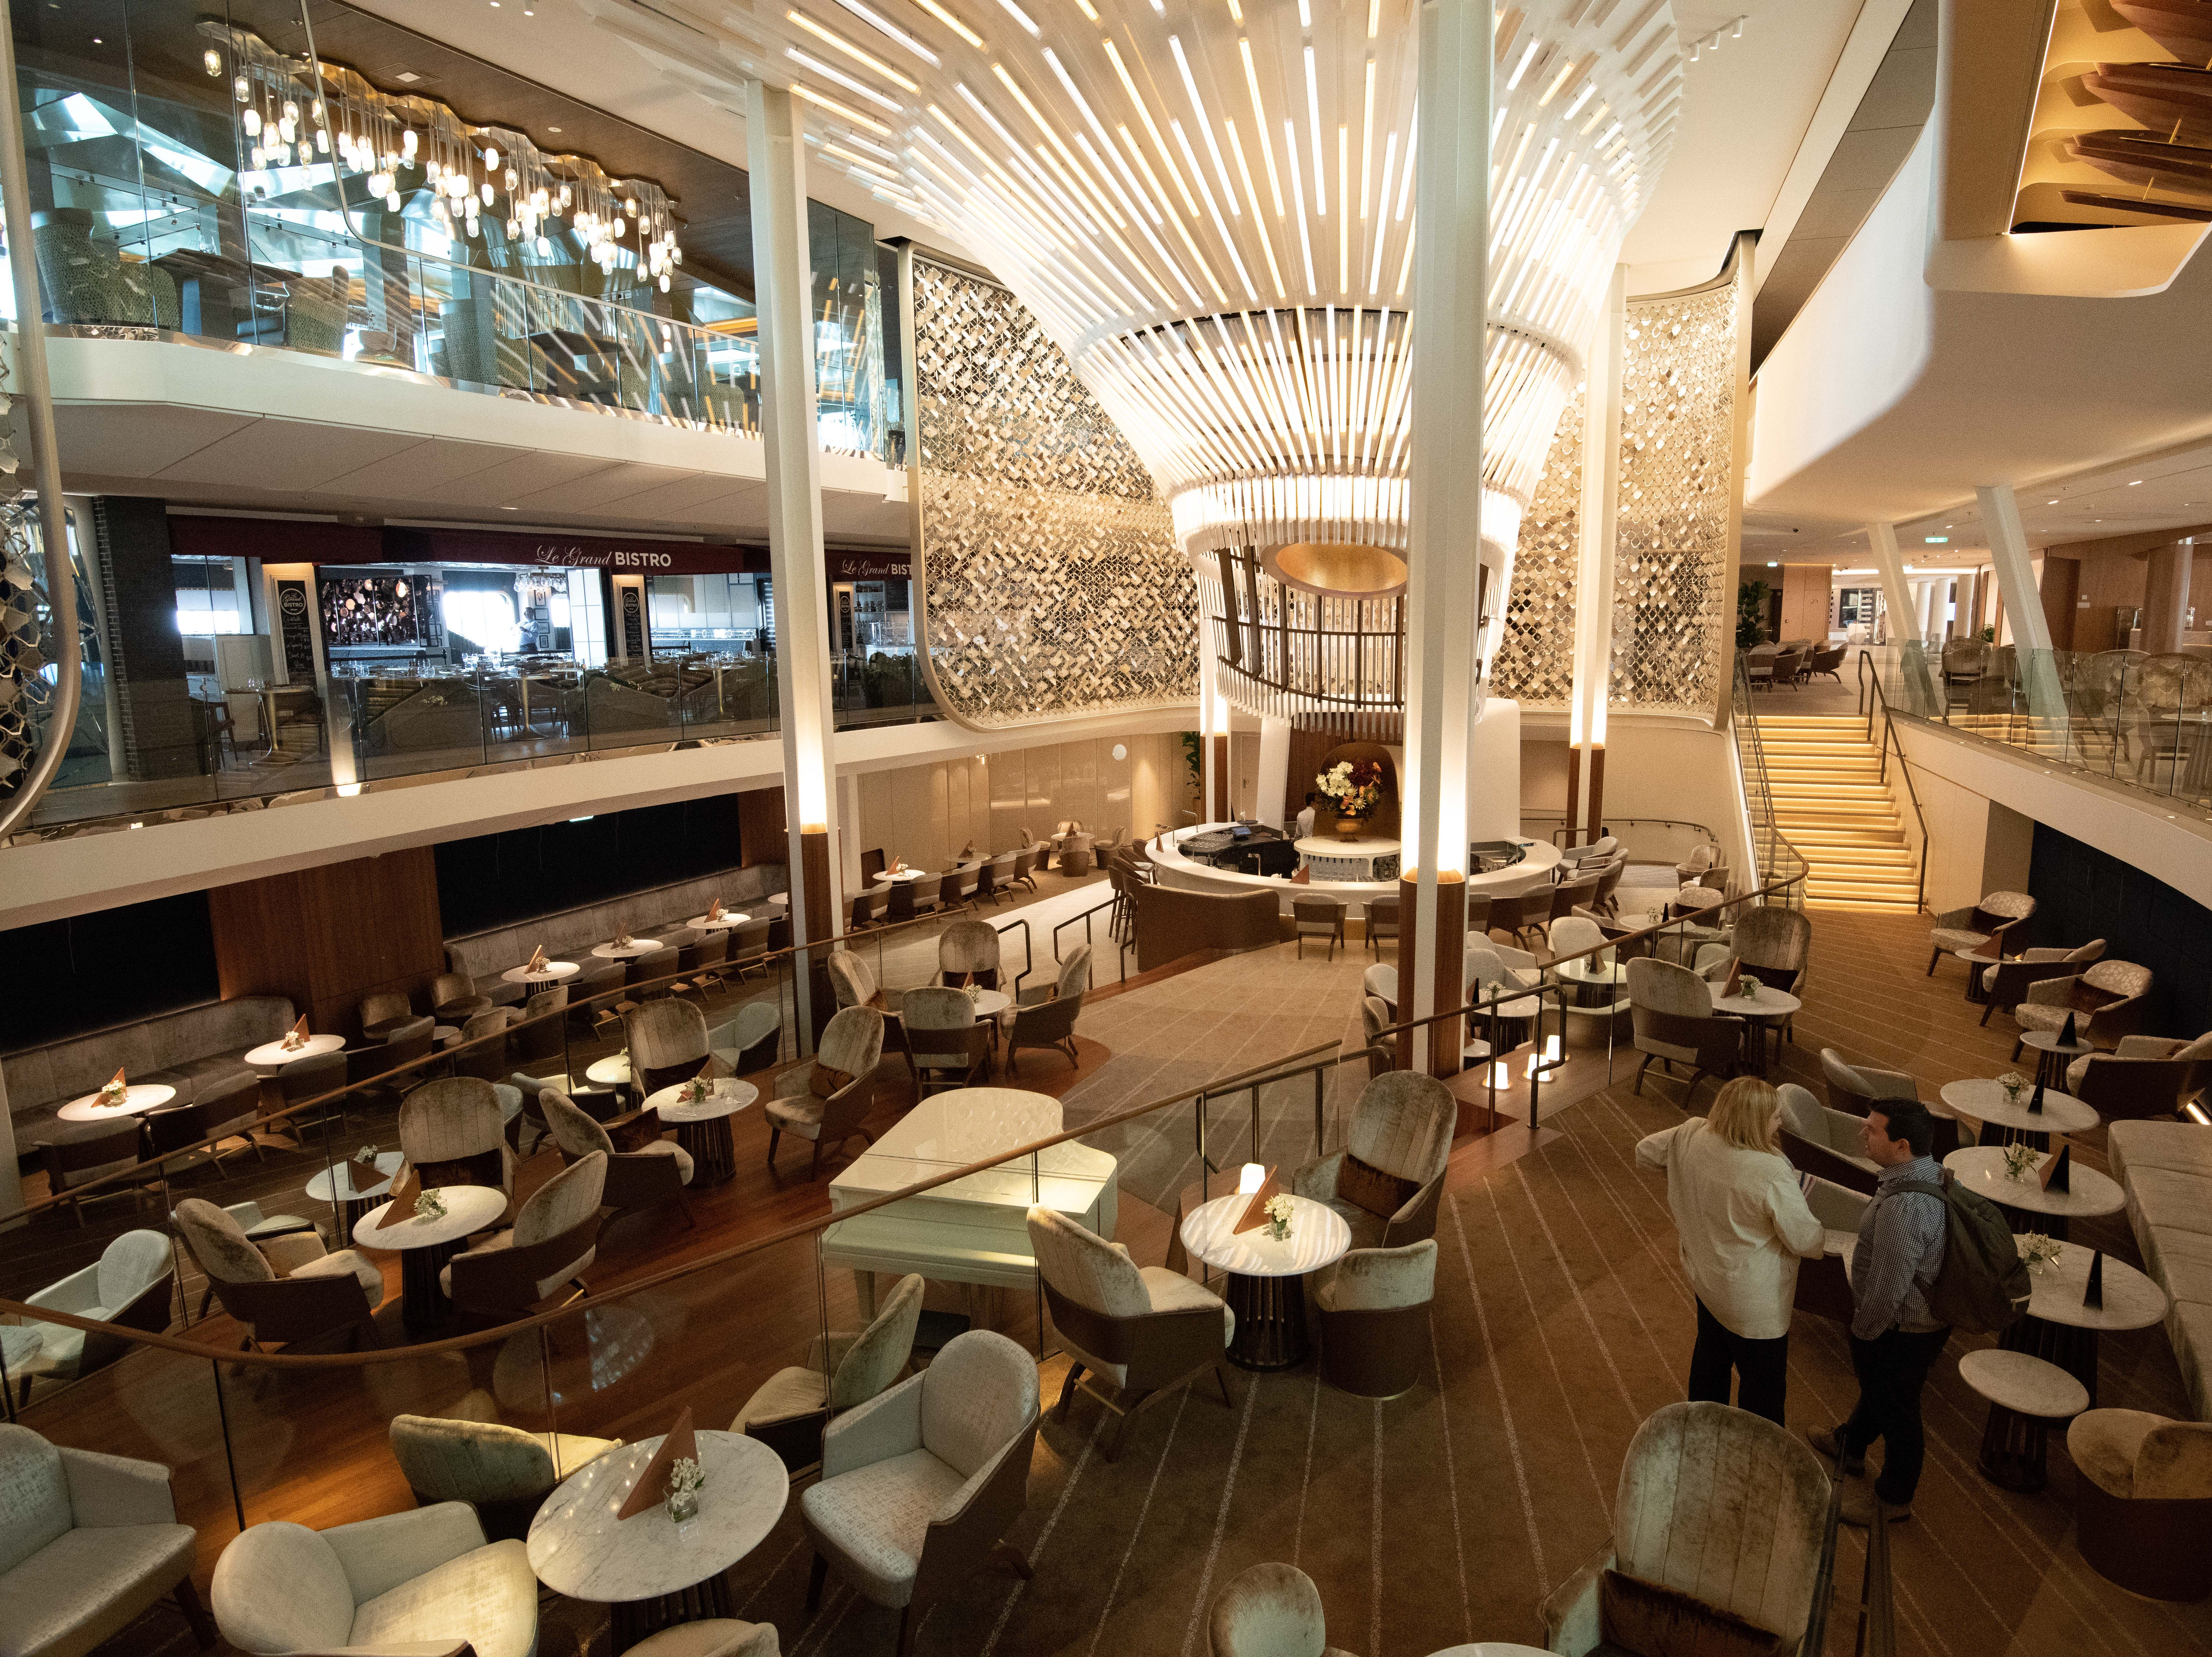 The design of The Grand Plaza on Celebrity Edge was inspired by the era of trans-Atlantic ship travel when dramatic staircases and ornate chandeliers were common on vessels.